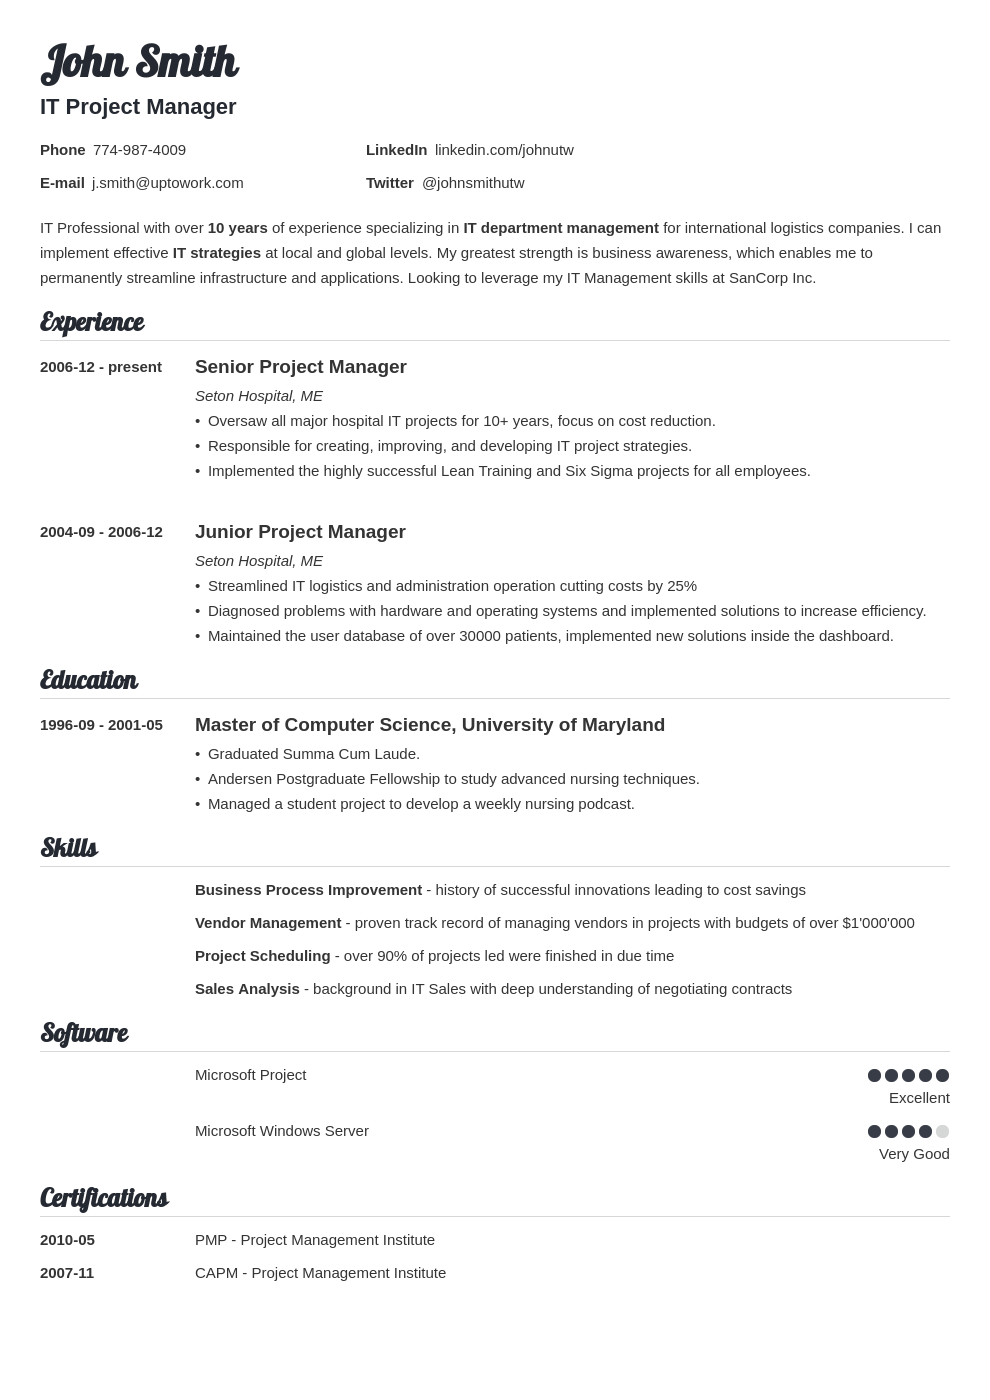 professional resume template valera - Resume Template Professional